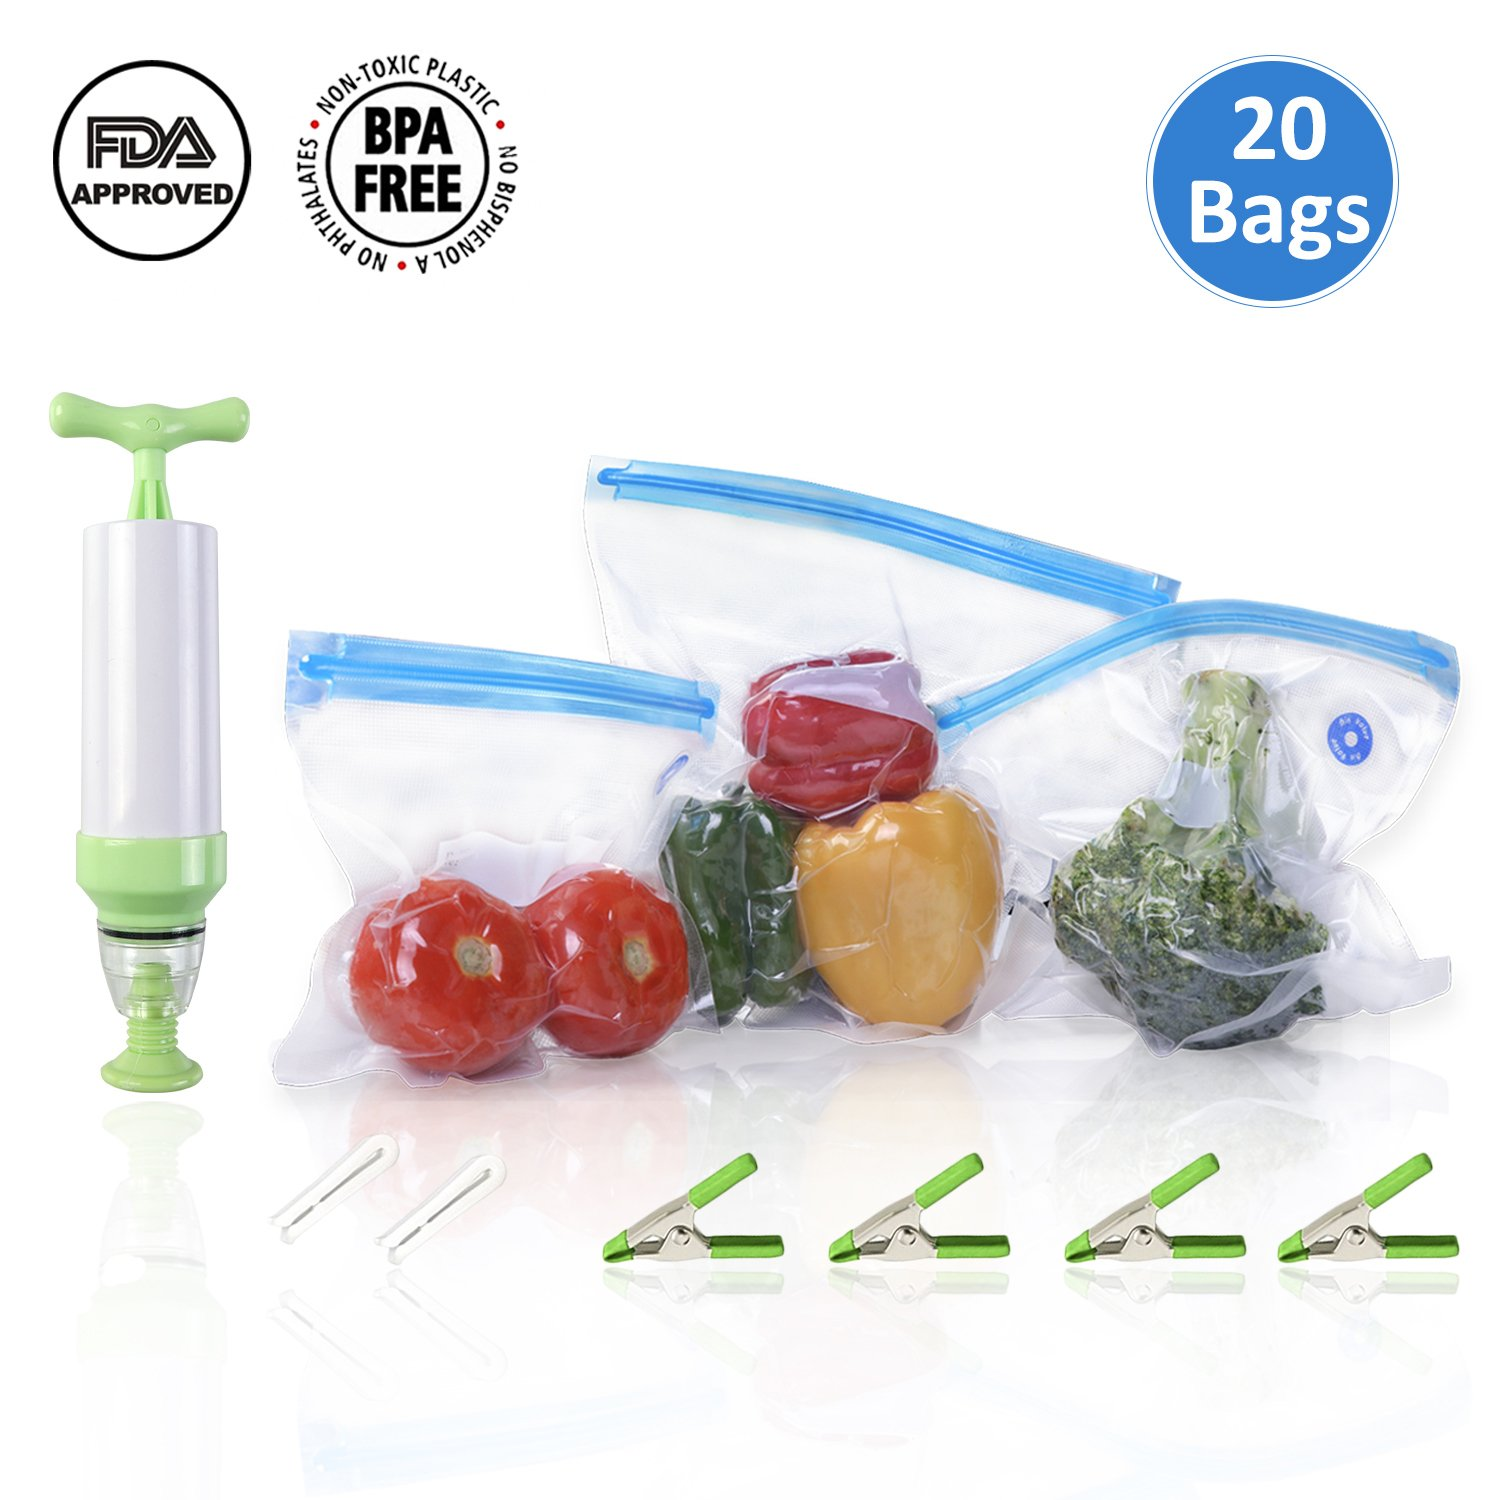 Lintat 20 BPA-free Reusable Sous Vide Bags Kit For Anova Joule Cookers With Handheld Vacuum Sealer 2 Bag Sealing Clips and 4 Sous Vide Clips (20 bags in two sizes+ pump)